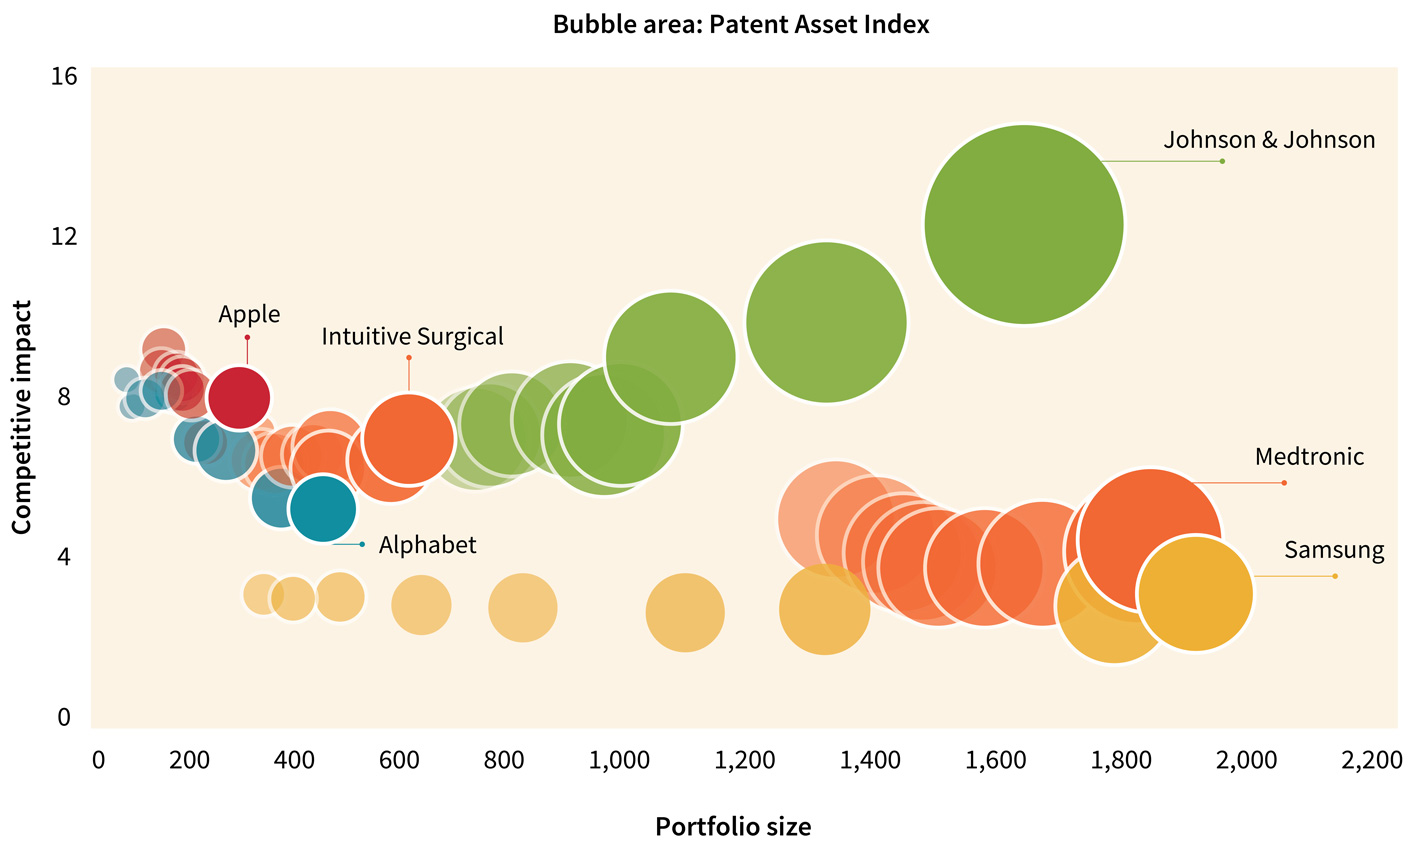 Figure 4. Patent Asset Index development for digital medtech/pharmaceuticals